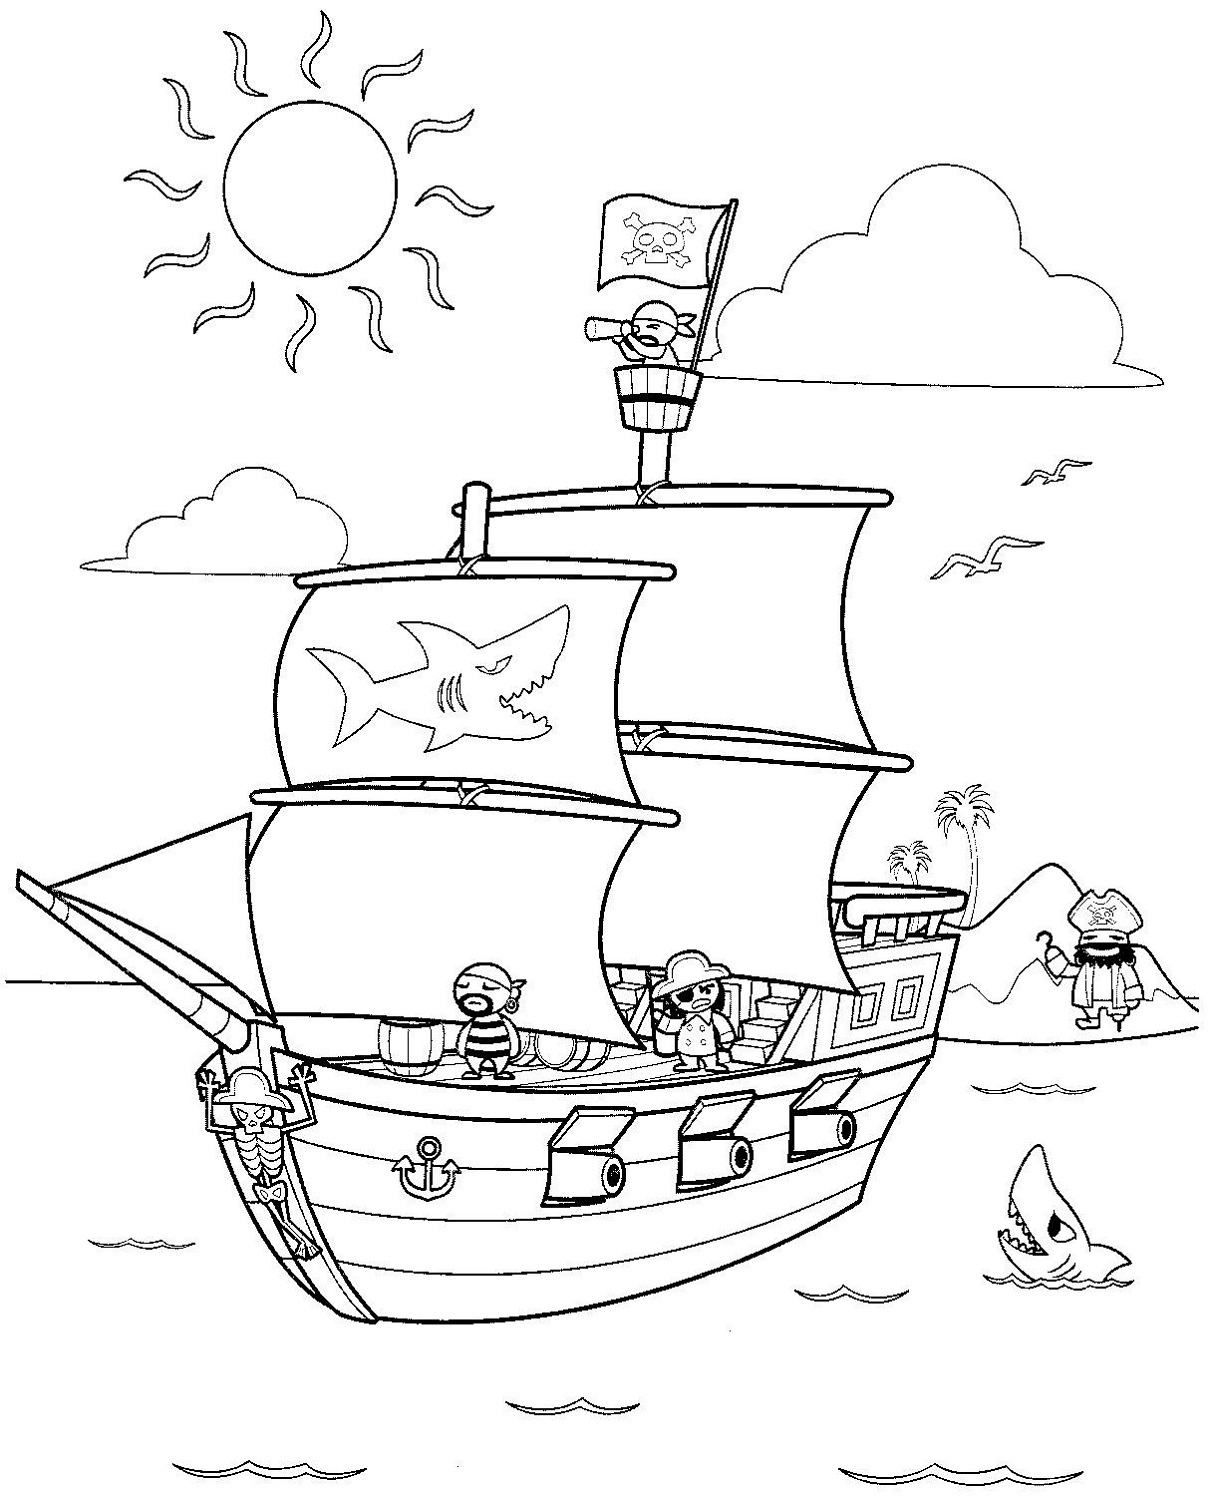 pirate-color-pages-ship